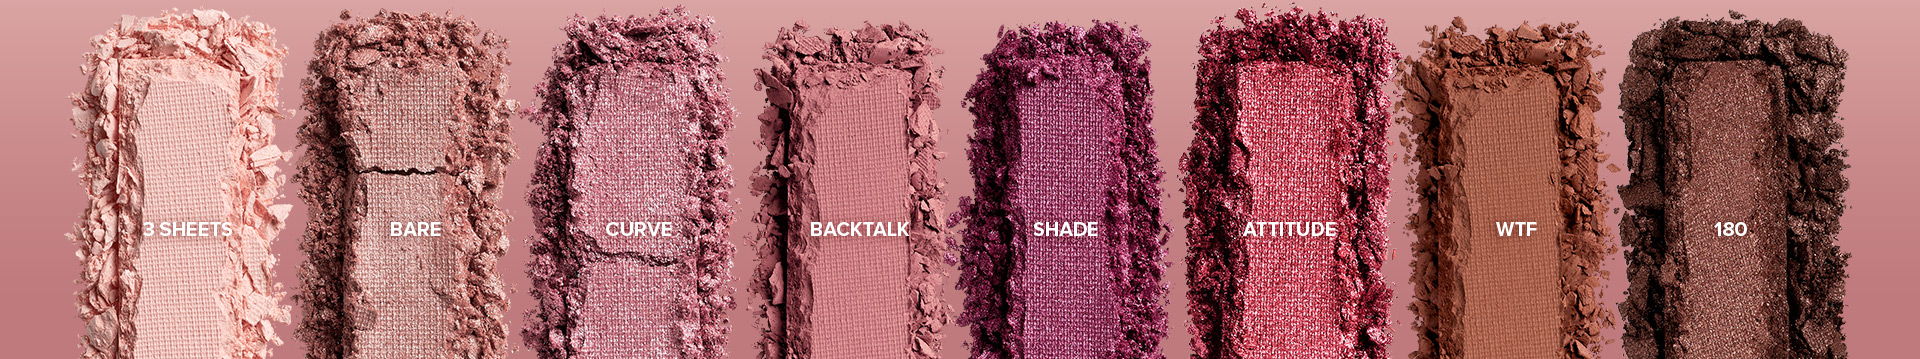 Urban Decay | Backtalk Palette